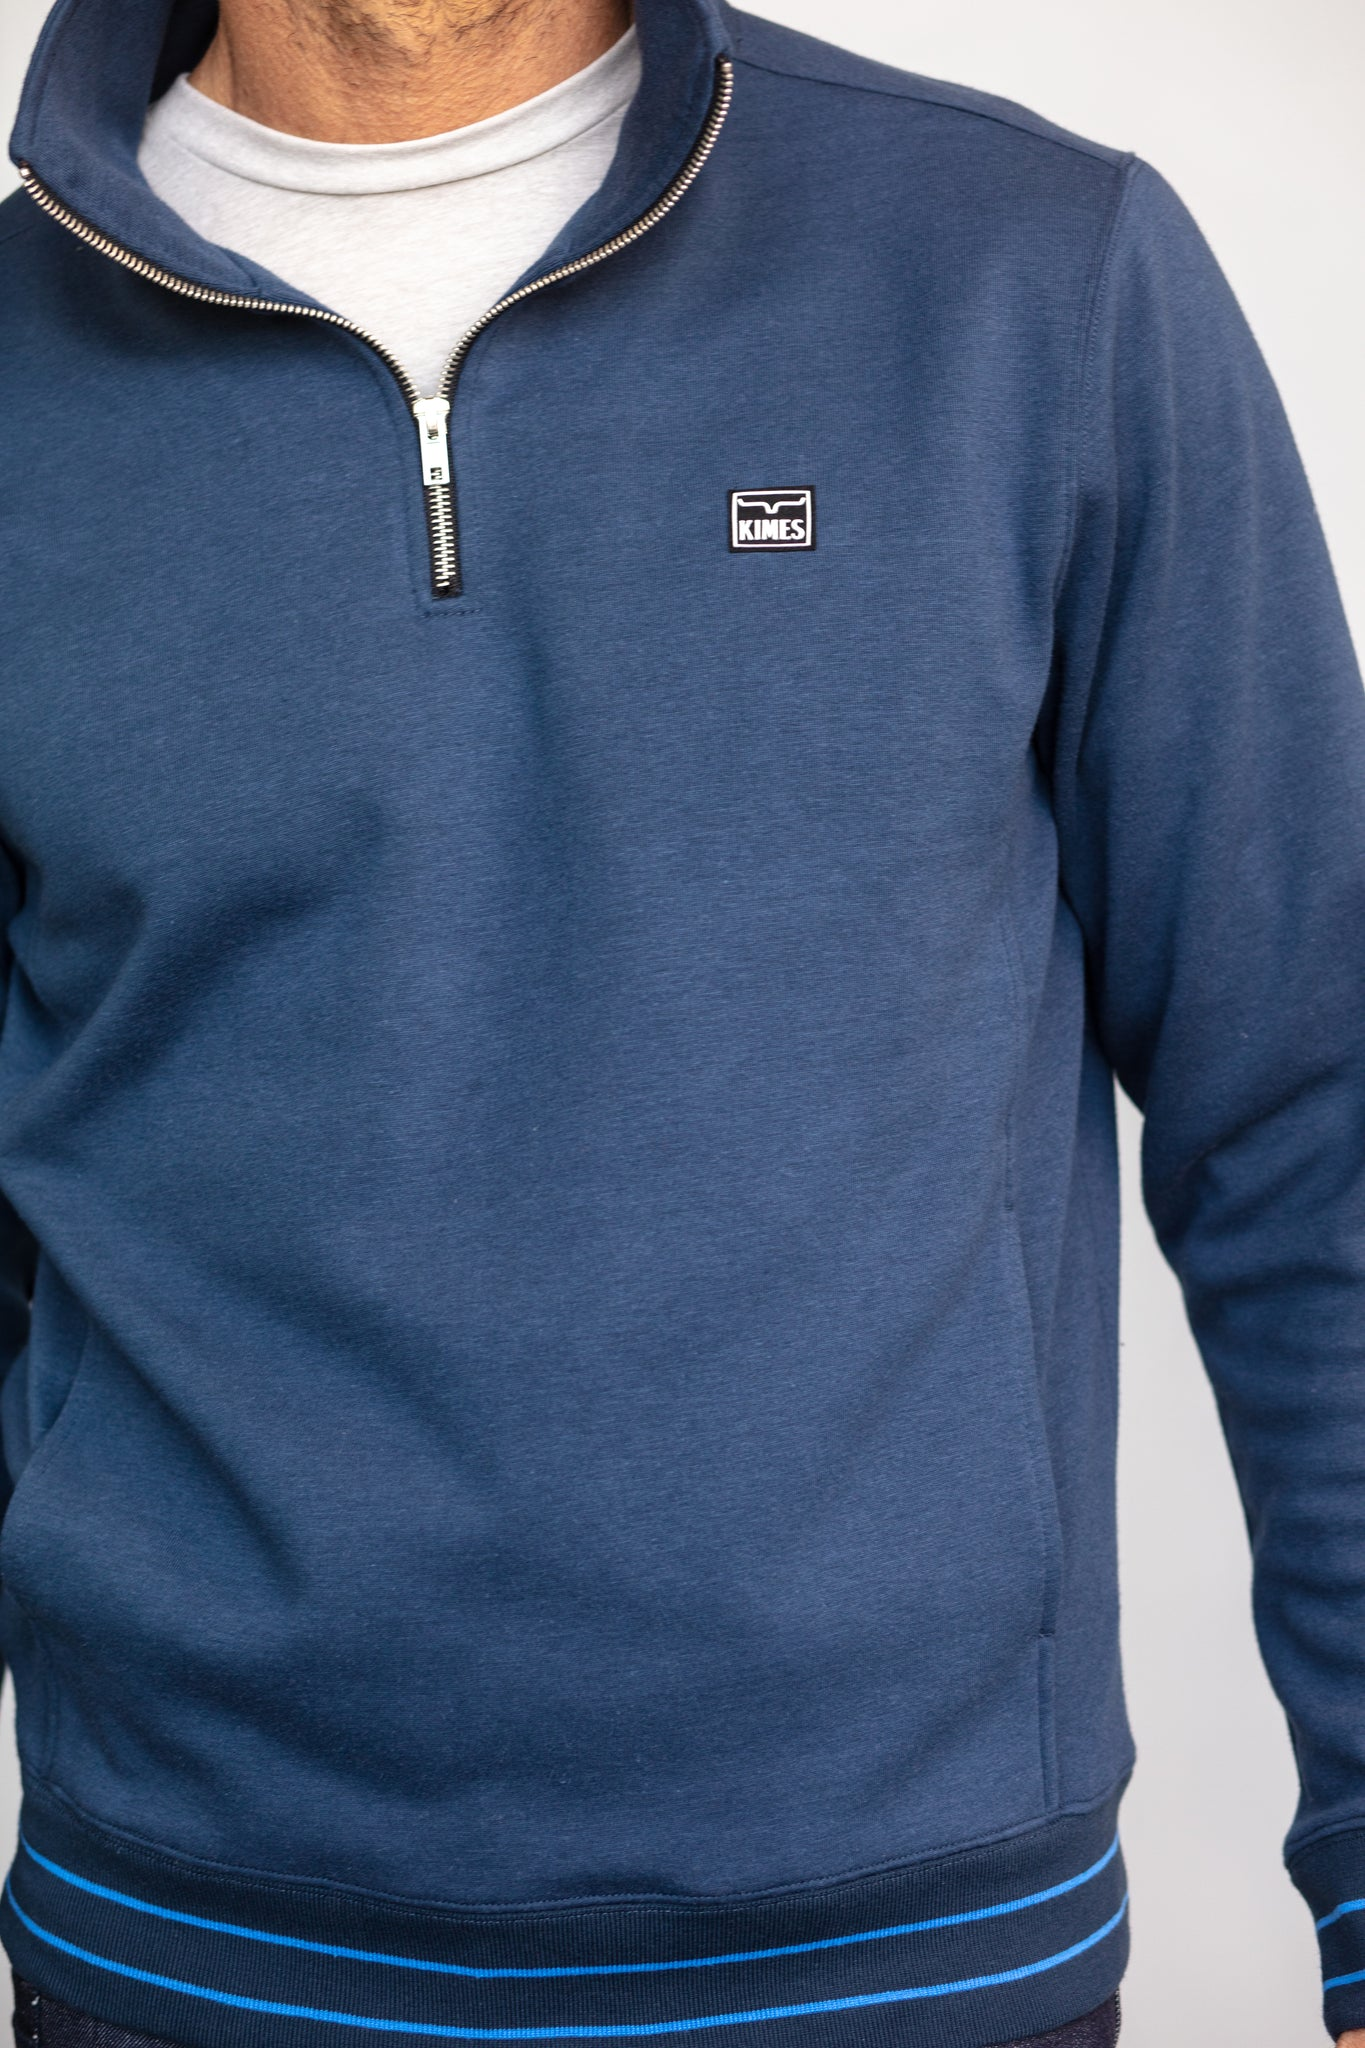 Knicks Quarter Zip